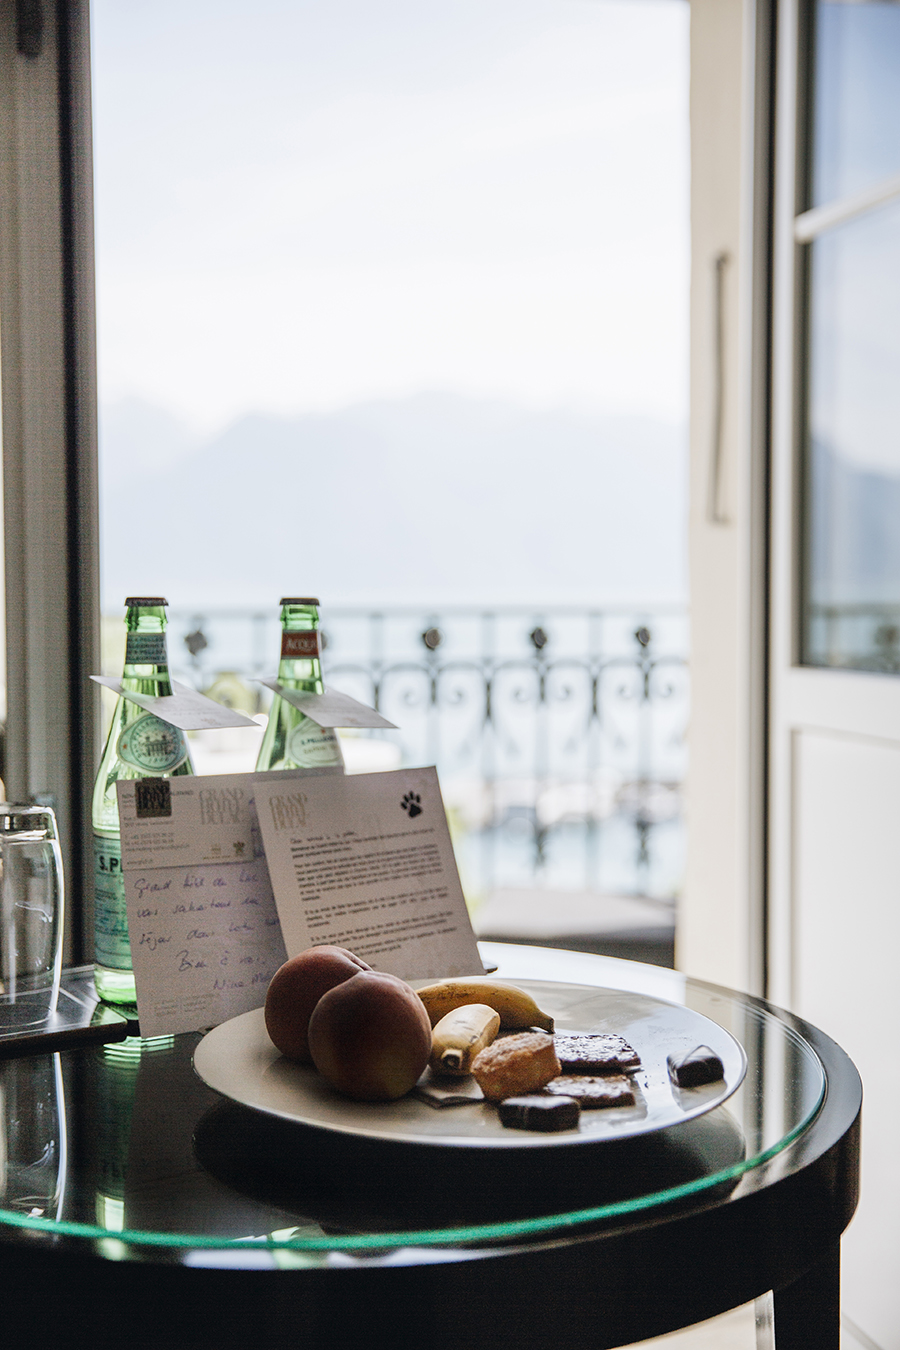 roadtrip_la_suisse_grand_hotel_du_lac_vevey_6